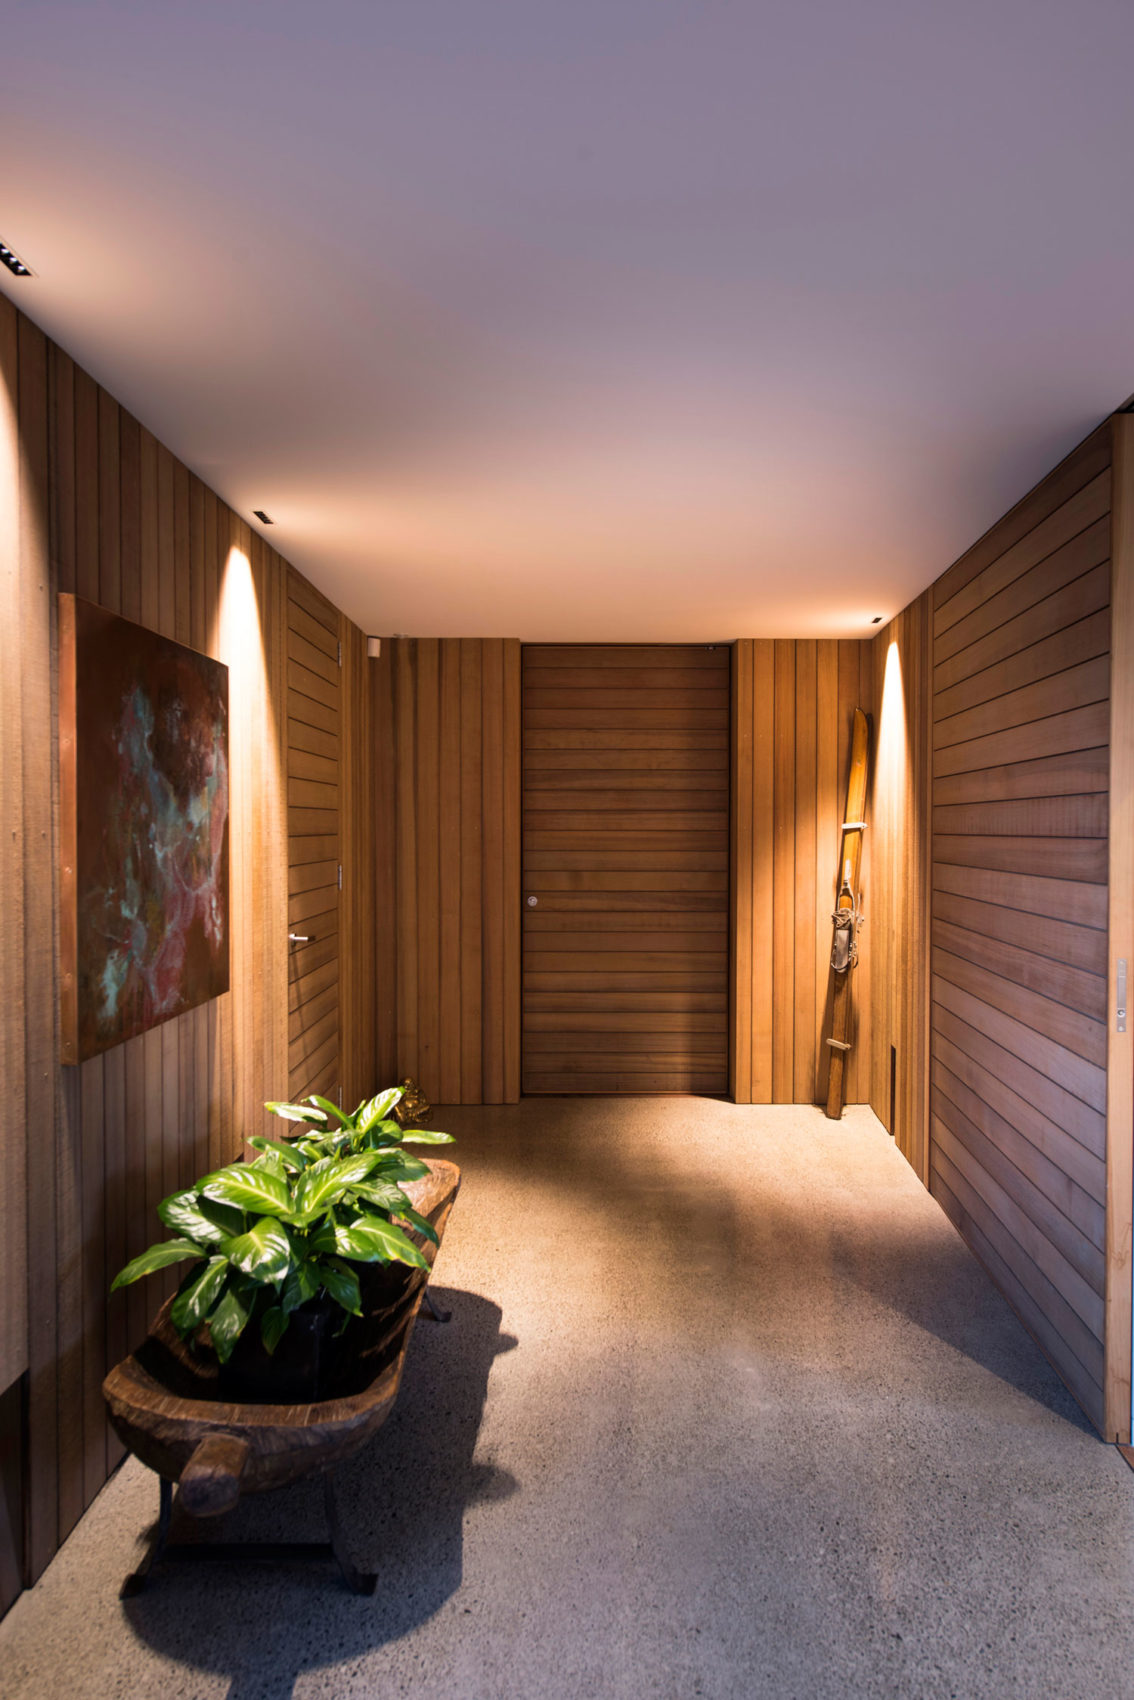 Andover Street by Case Ornsby Design (3)